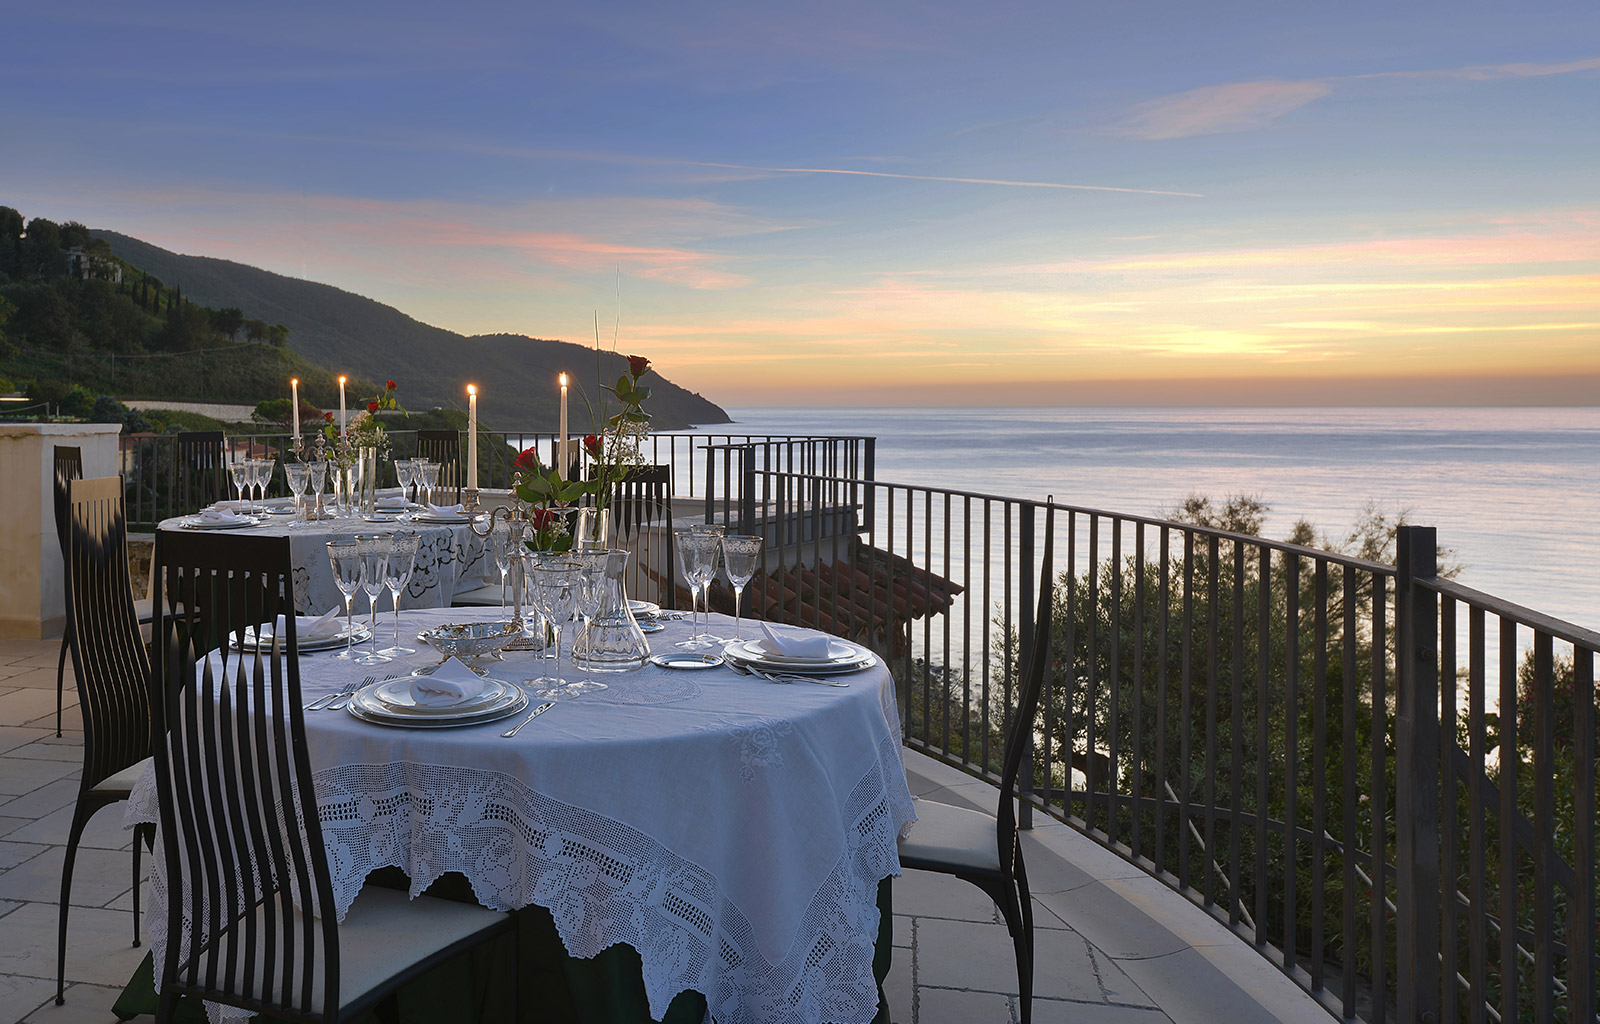 10 Tips For An Extra Special Valentine\'s Dinner - The Lux Traveller